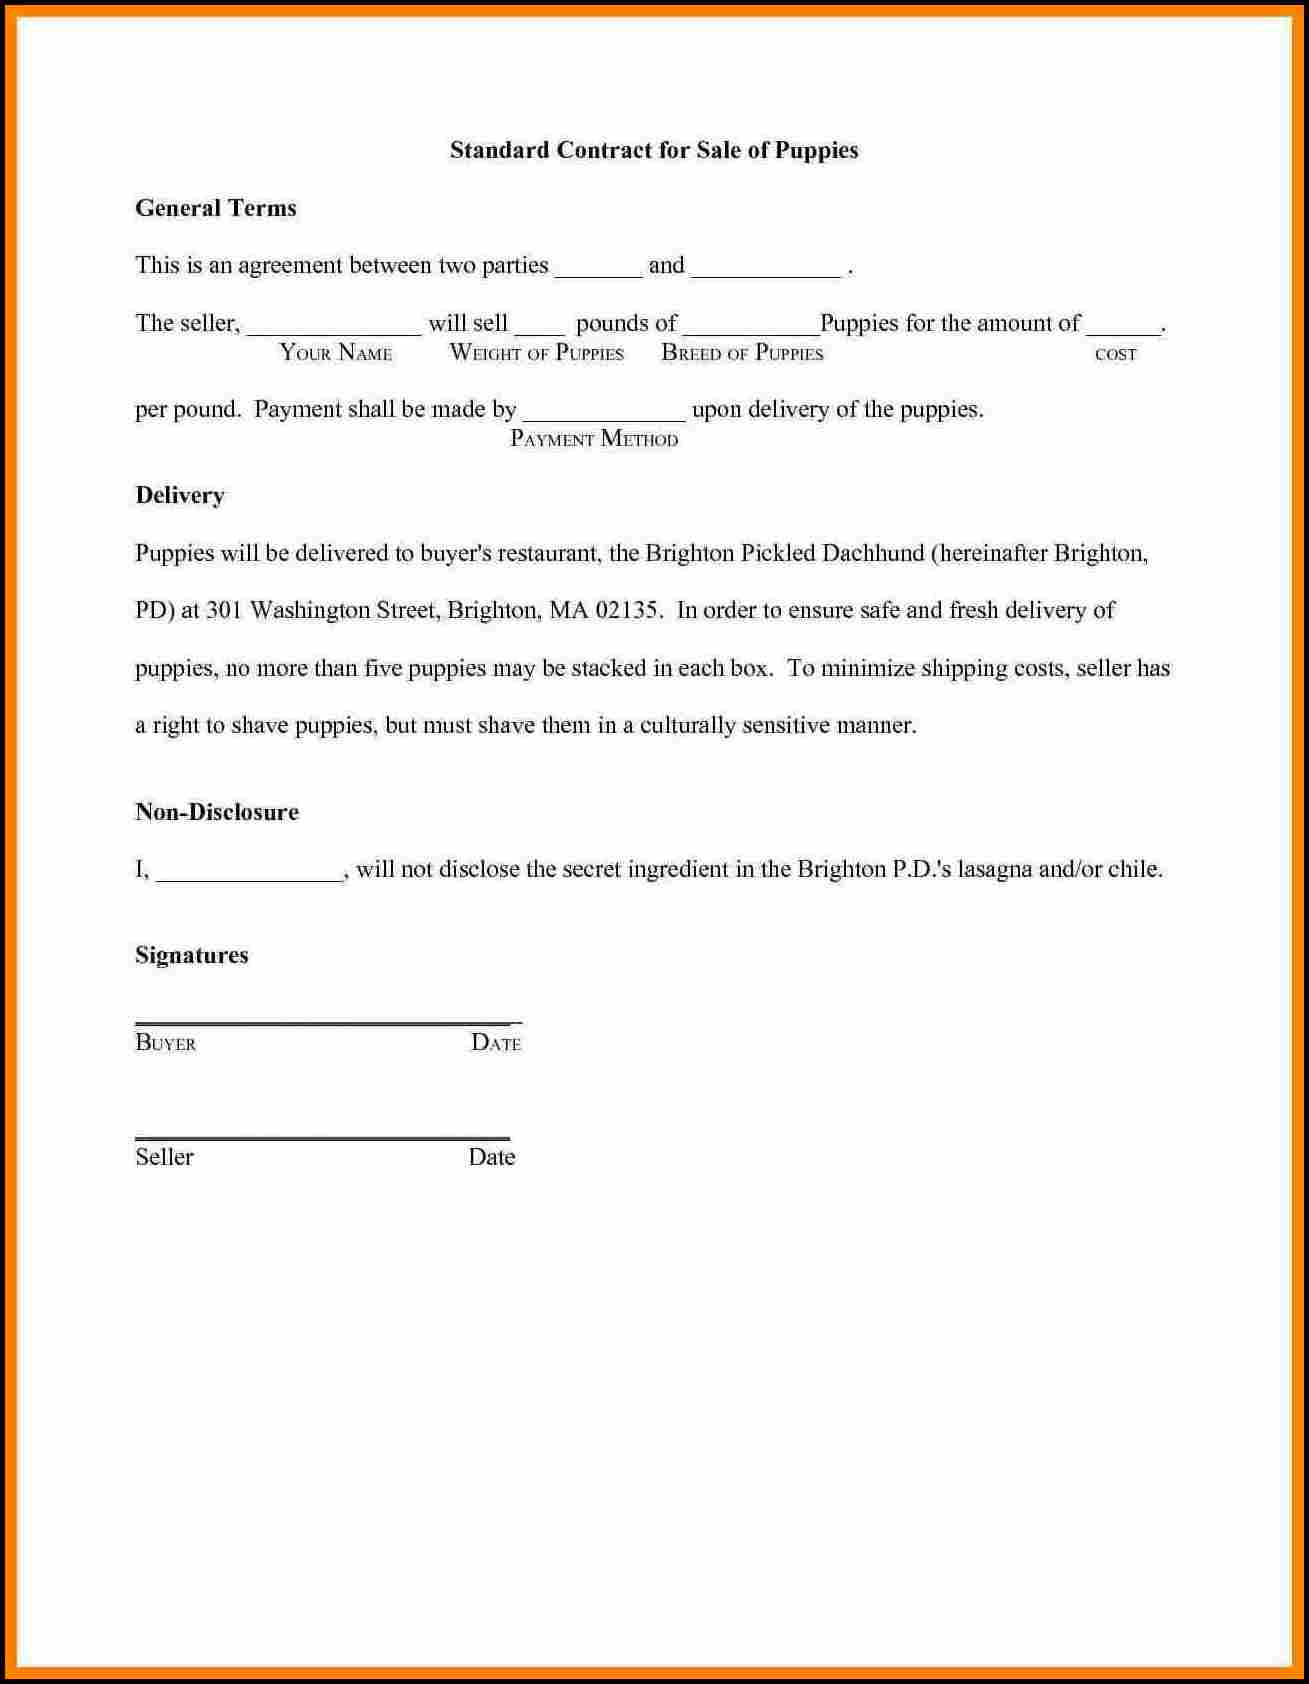 Business Agreement Between Two Parties Sample